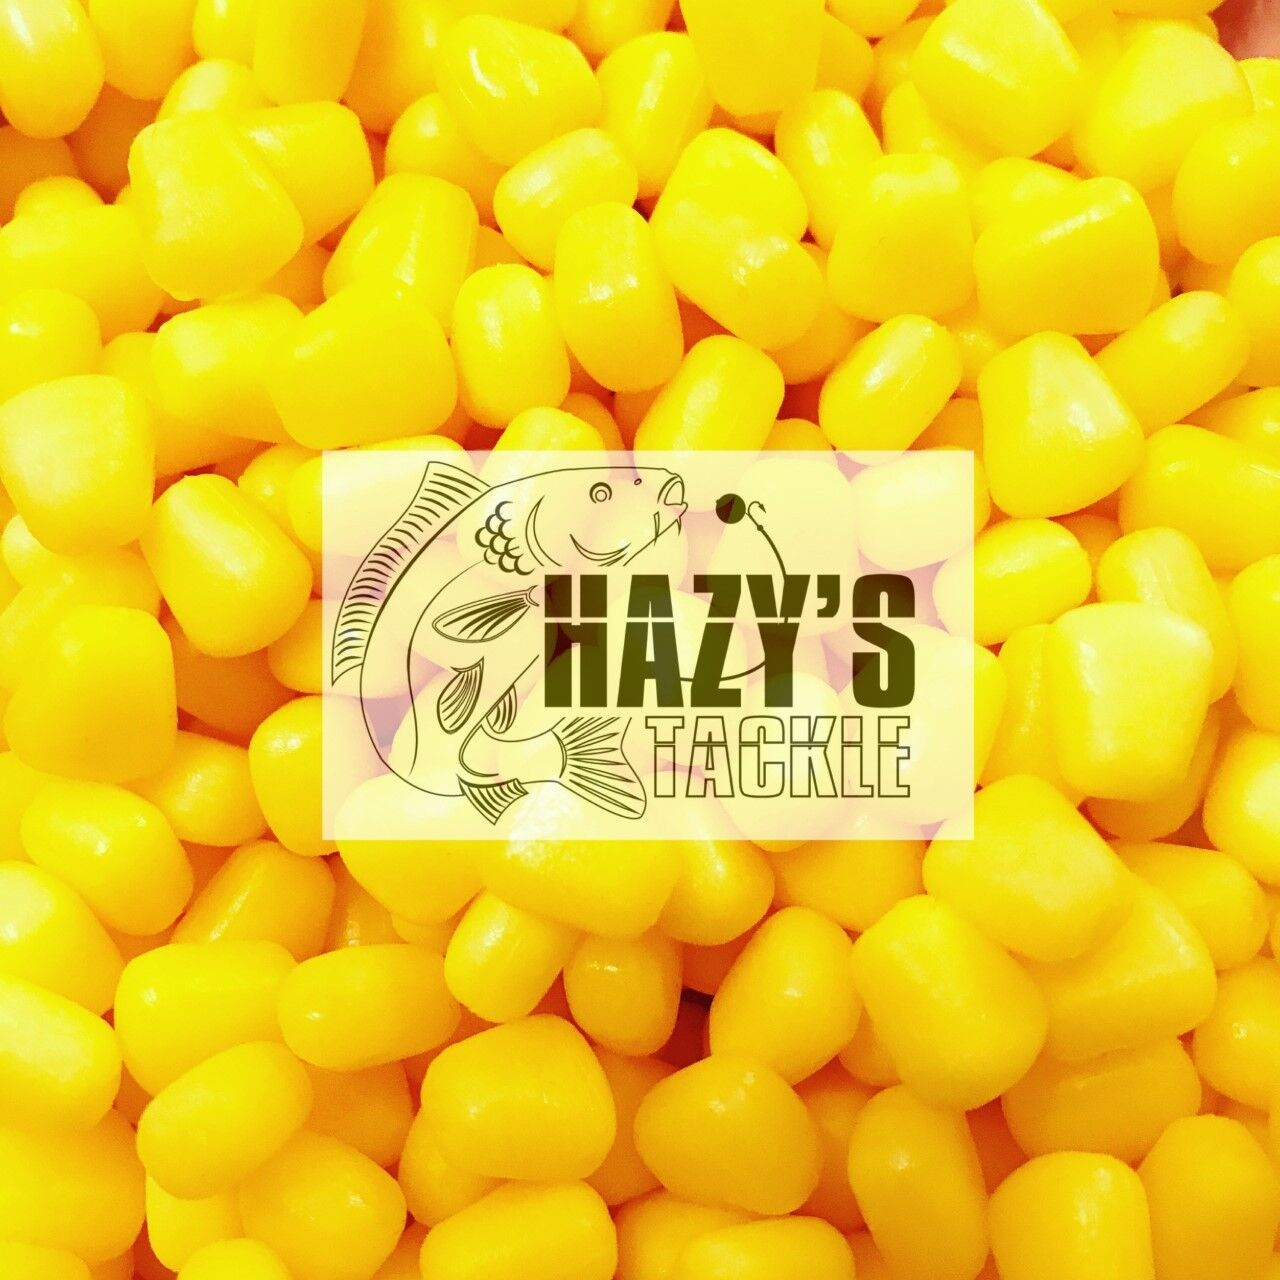 Large Pop Up Maize Imitation Bait Carp Fishing Red Glow In The Dark Floating